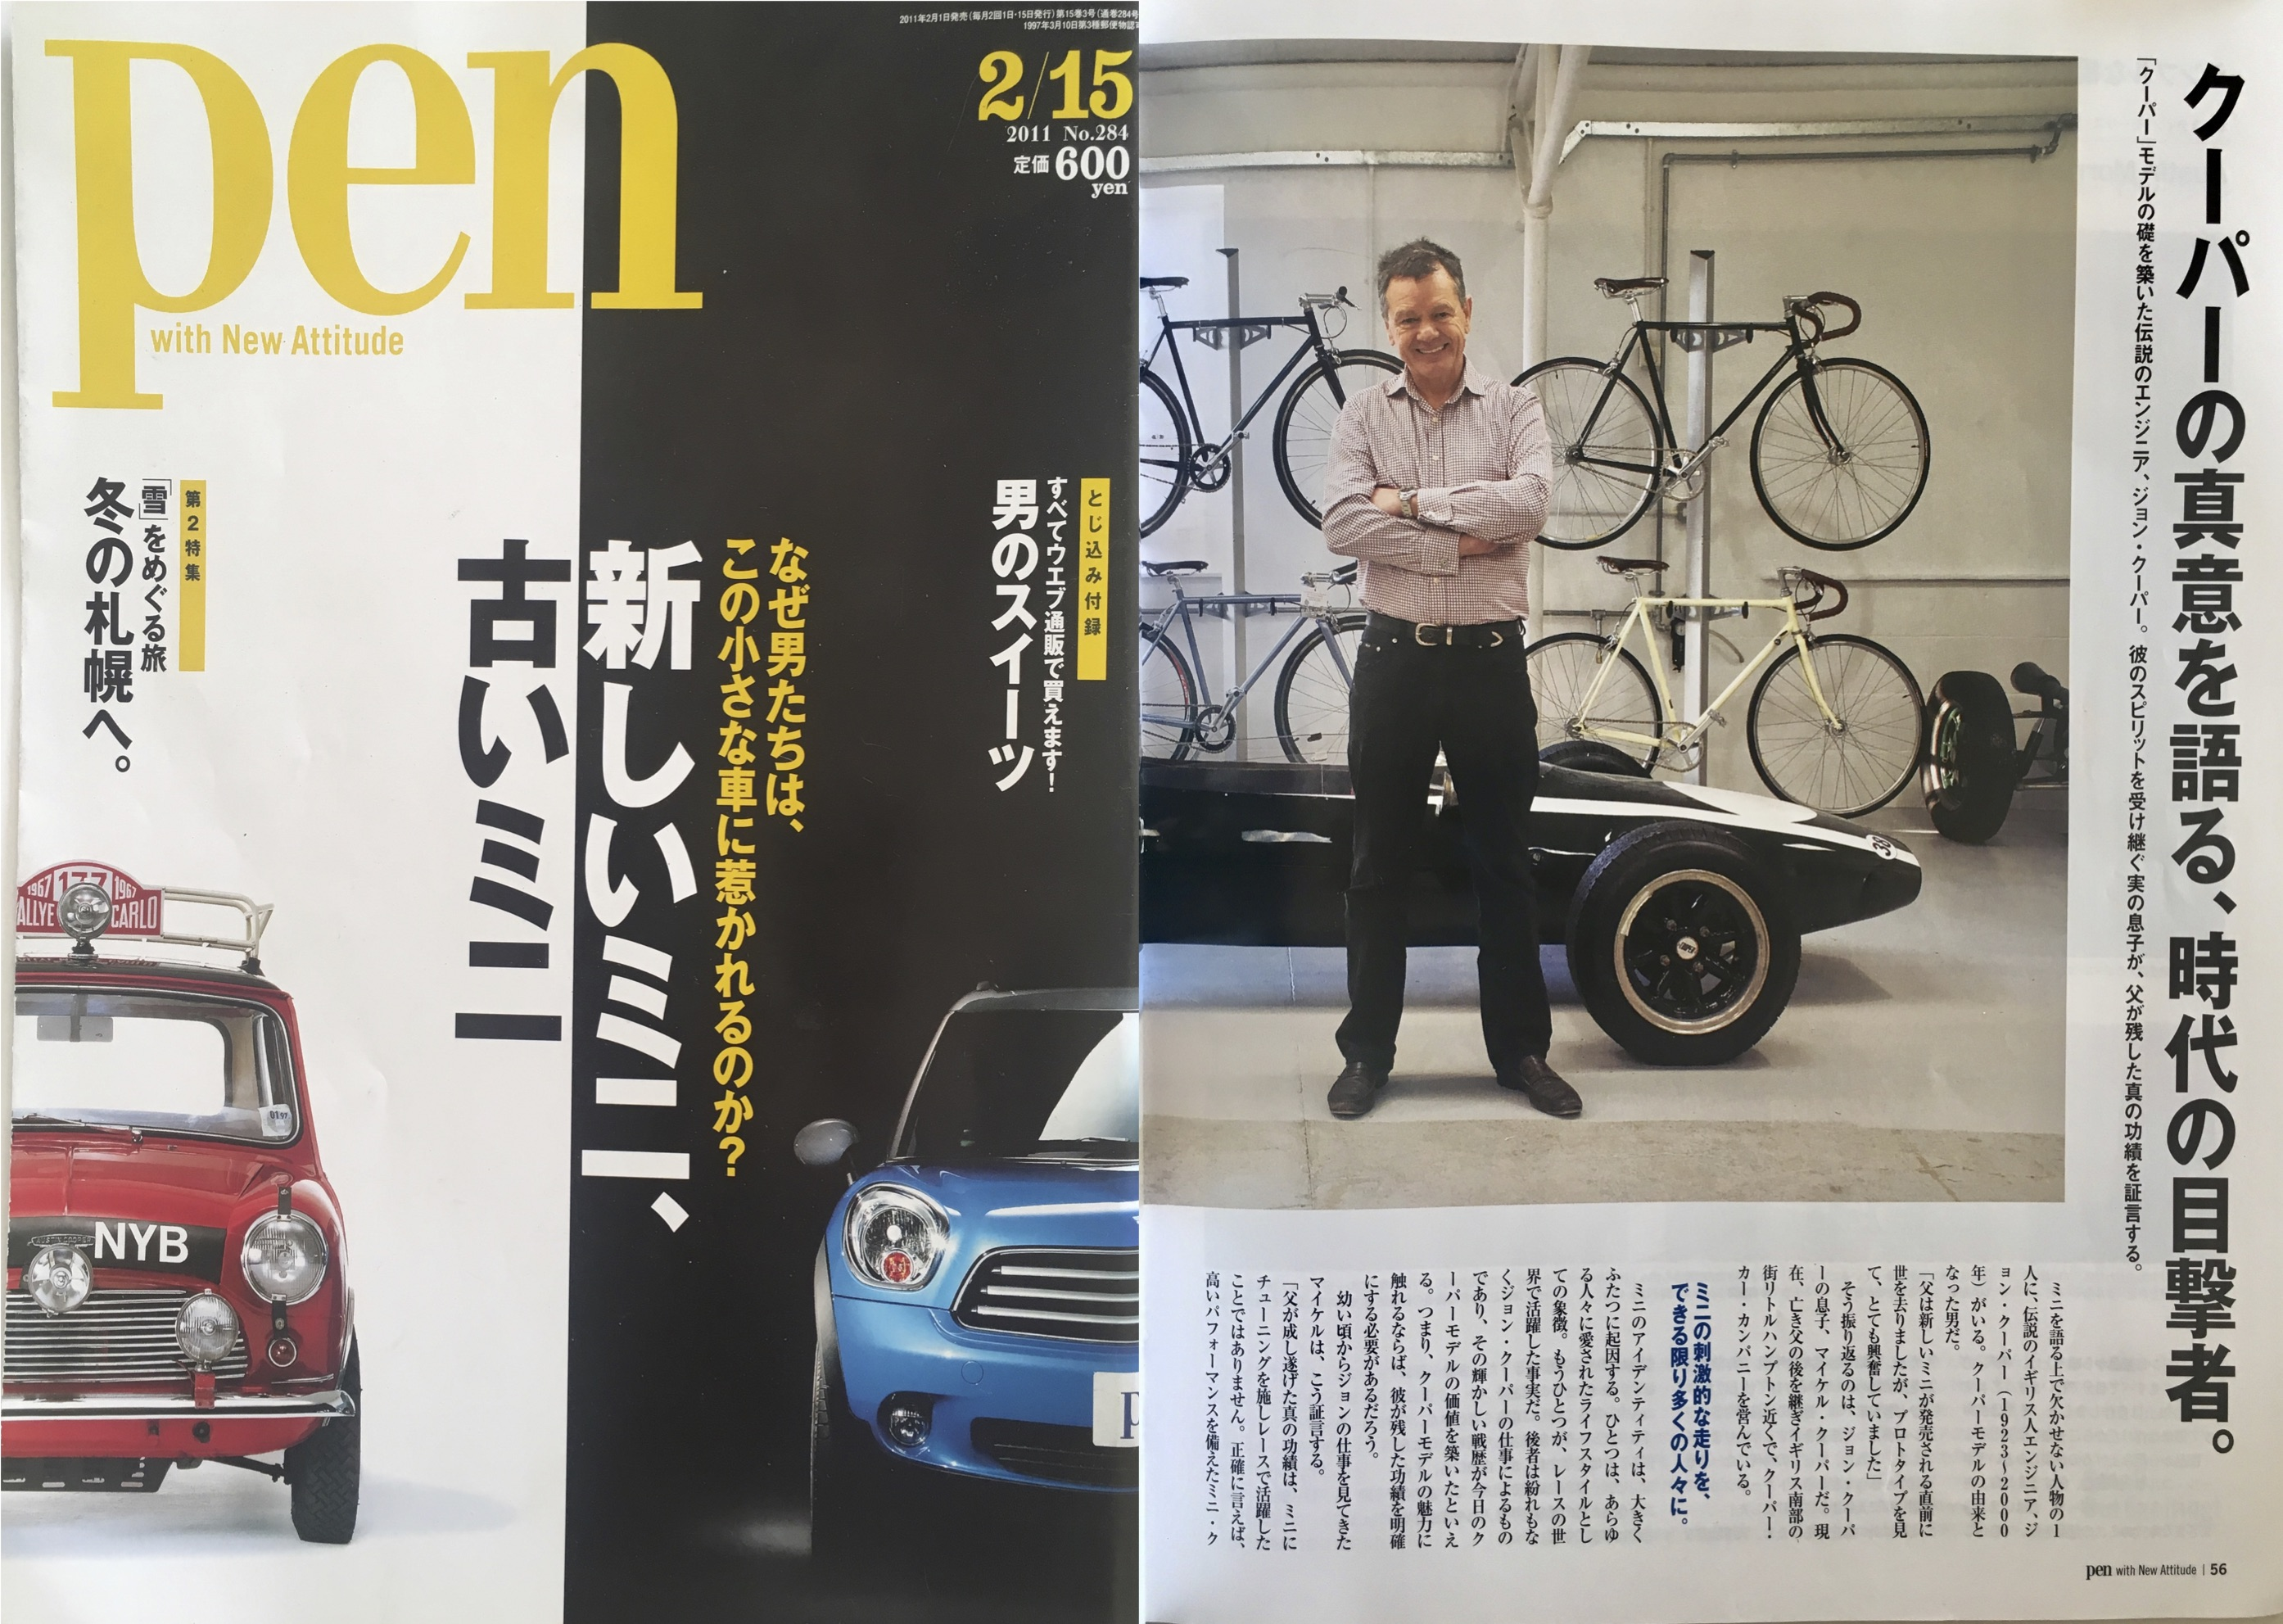 cooperbikes pen クーパーバイクス